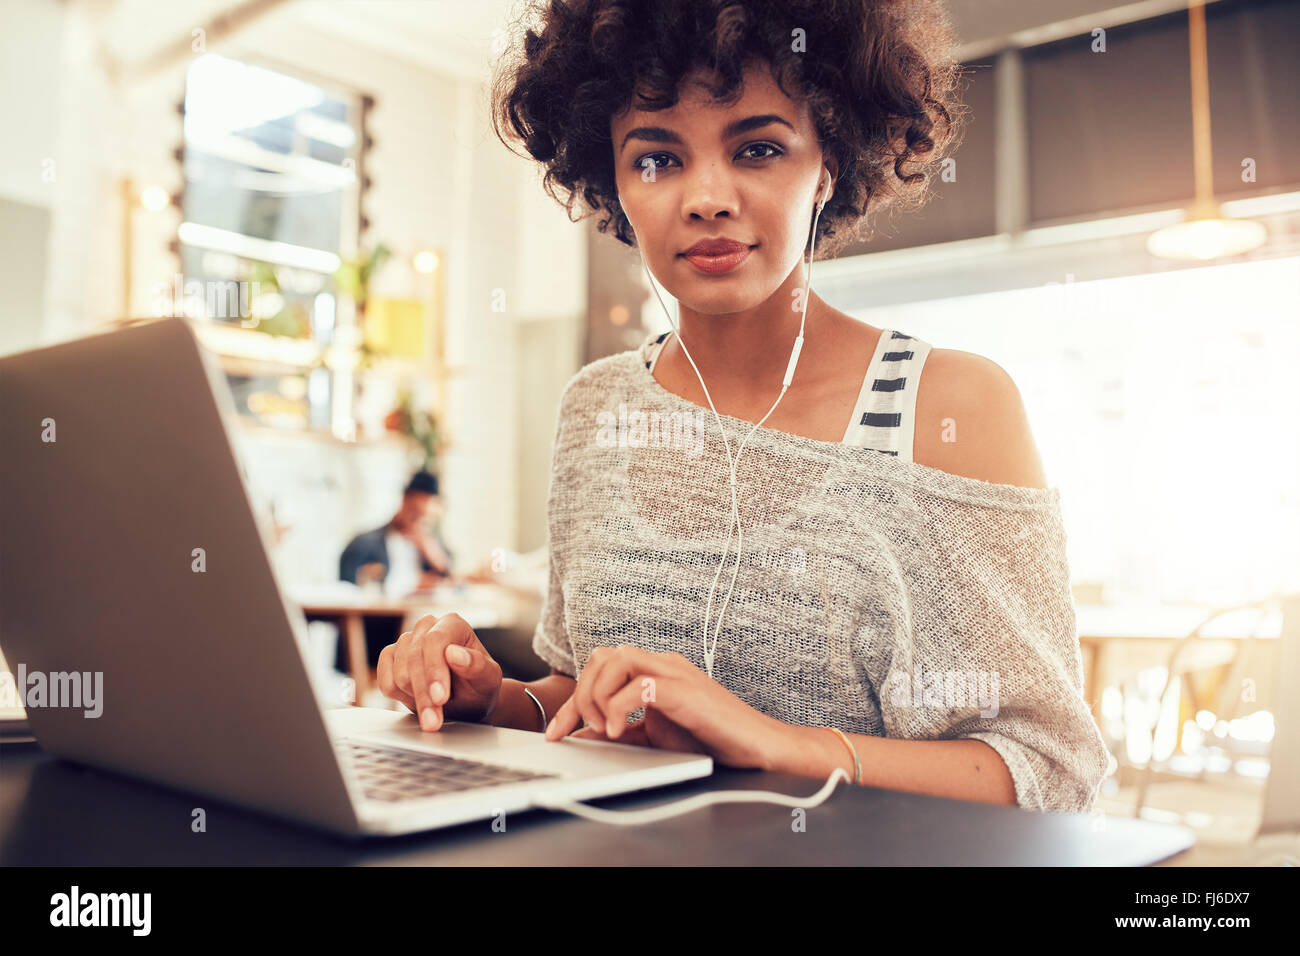 Portrait of young woman with a laptop at cafe. African woman sitting in coffee shop with a laptop. - Stock Image